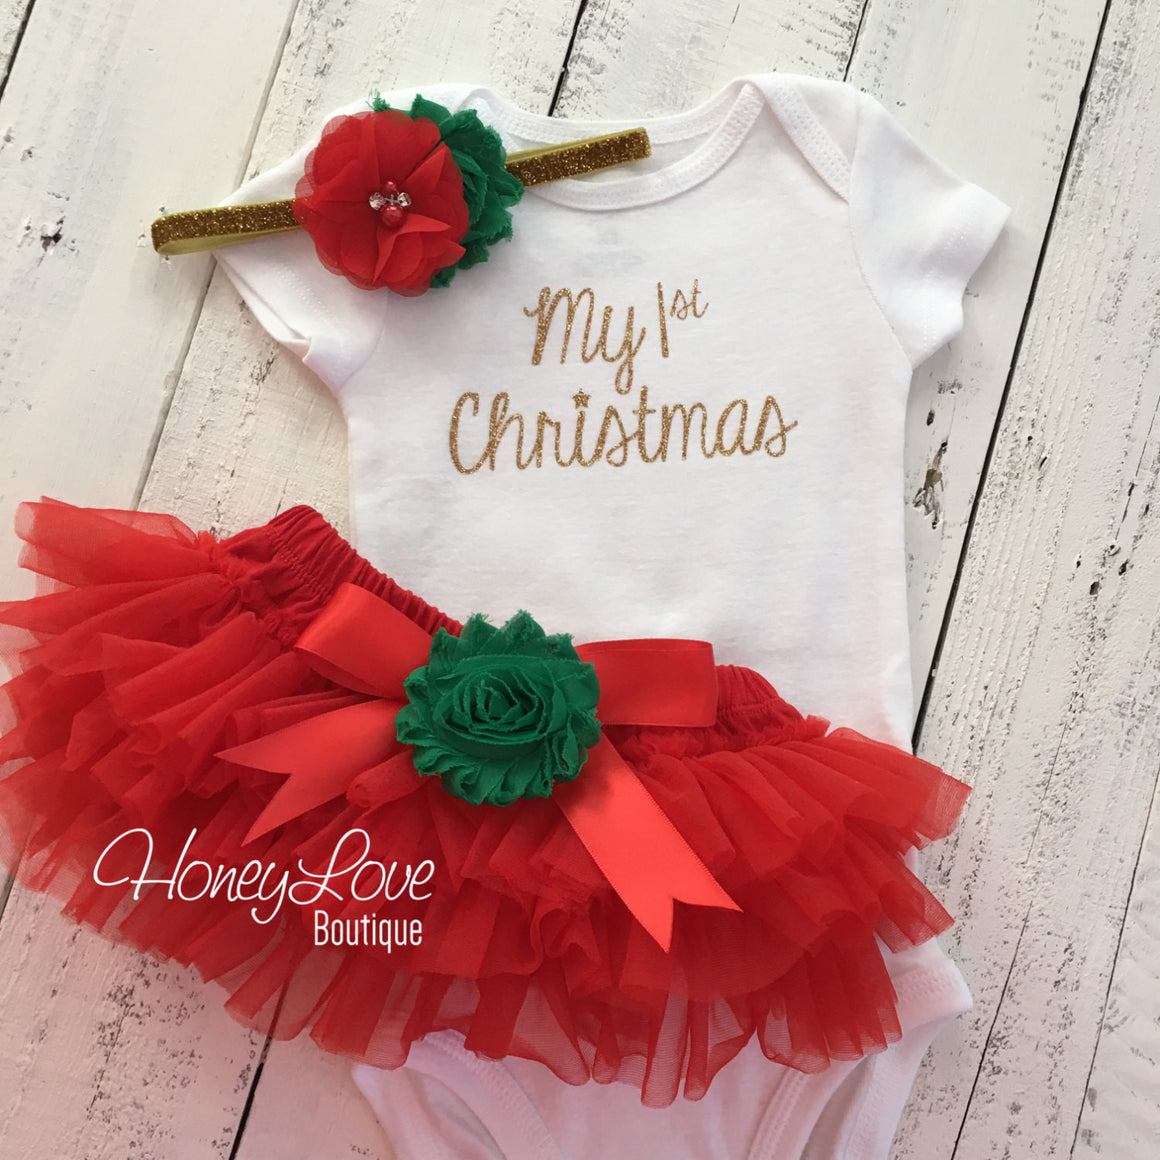 My 1st Christmas Outfit -  Gold/Silver -  Red, Green and Glitter - Embellished tutu skirt bloomers